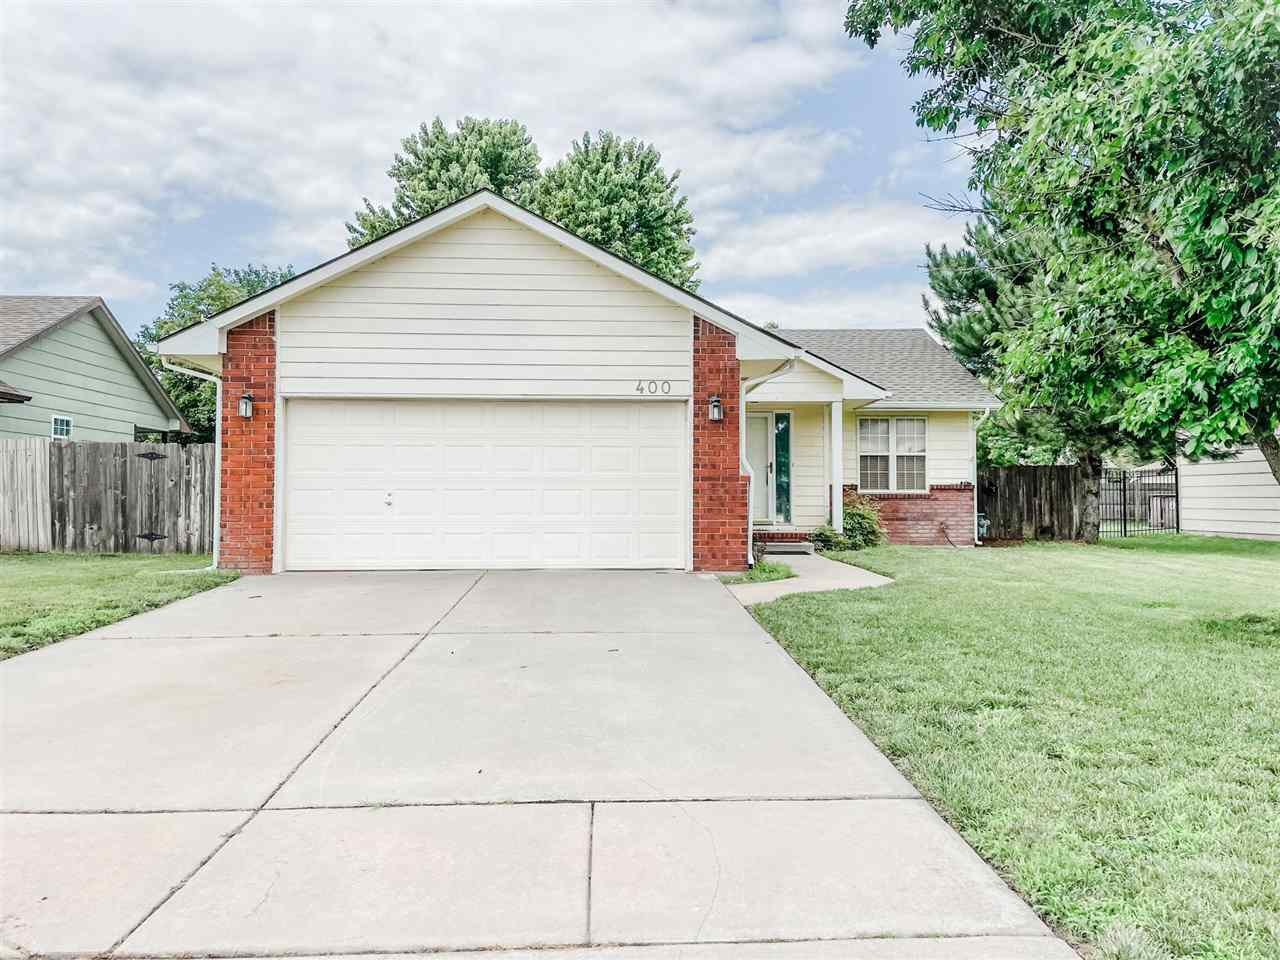 Looking in Valley Center? Check out this 2 bedroom, 2 bath ranch home with 1655 square feet in a beautiful neighborhood. Home has vaulted ceilings as you enter with master and 2nd bedroom and bath on the first floor.  The kitchen near the back has a cute nook surrounded by windows where you can enjoy your meals looking outside. Access to front and back have few steps. Basement offers a nice living room with laundry area. And a 3rd bedroom and 3rd bathroom are roughed in ready to be finished to add immediate square footage to the home. The backyard offers a tree-shaded,  fully-fenced yard with sprinklers on irrigation well.  Brand new roof put in 2021.  This is a one-owner home and located on a beautiful street. So many amenitites right around the corner from this house. Lions park is two streets away and right there is the valley park swimming pool and library.  Taking strolls in the park or summertime fun at the pool or winter book time at the library allow fun during all weather climates…. just a few minutes from the home.  With a little TLC this can be your dream home.